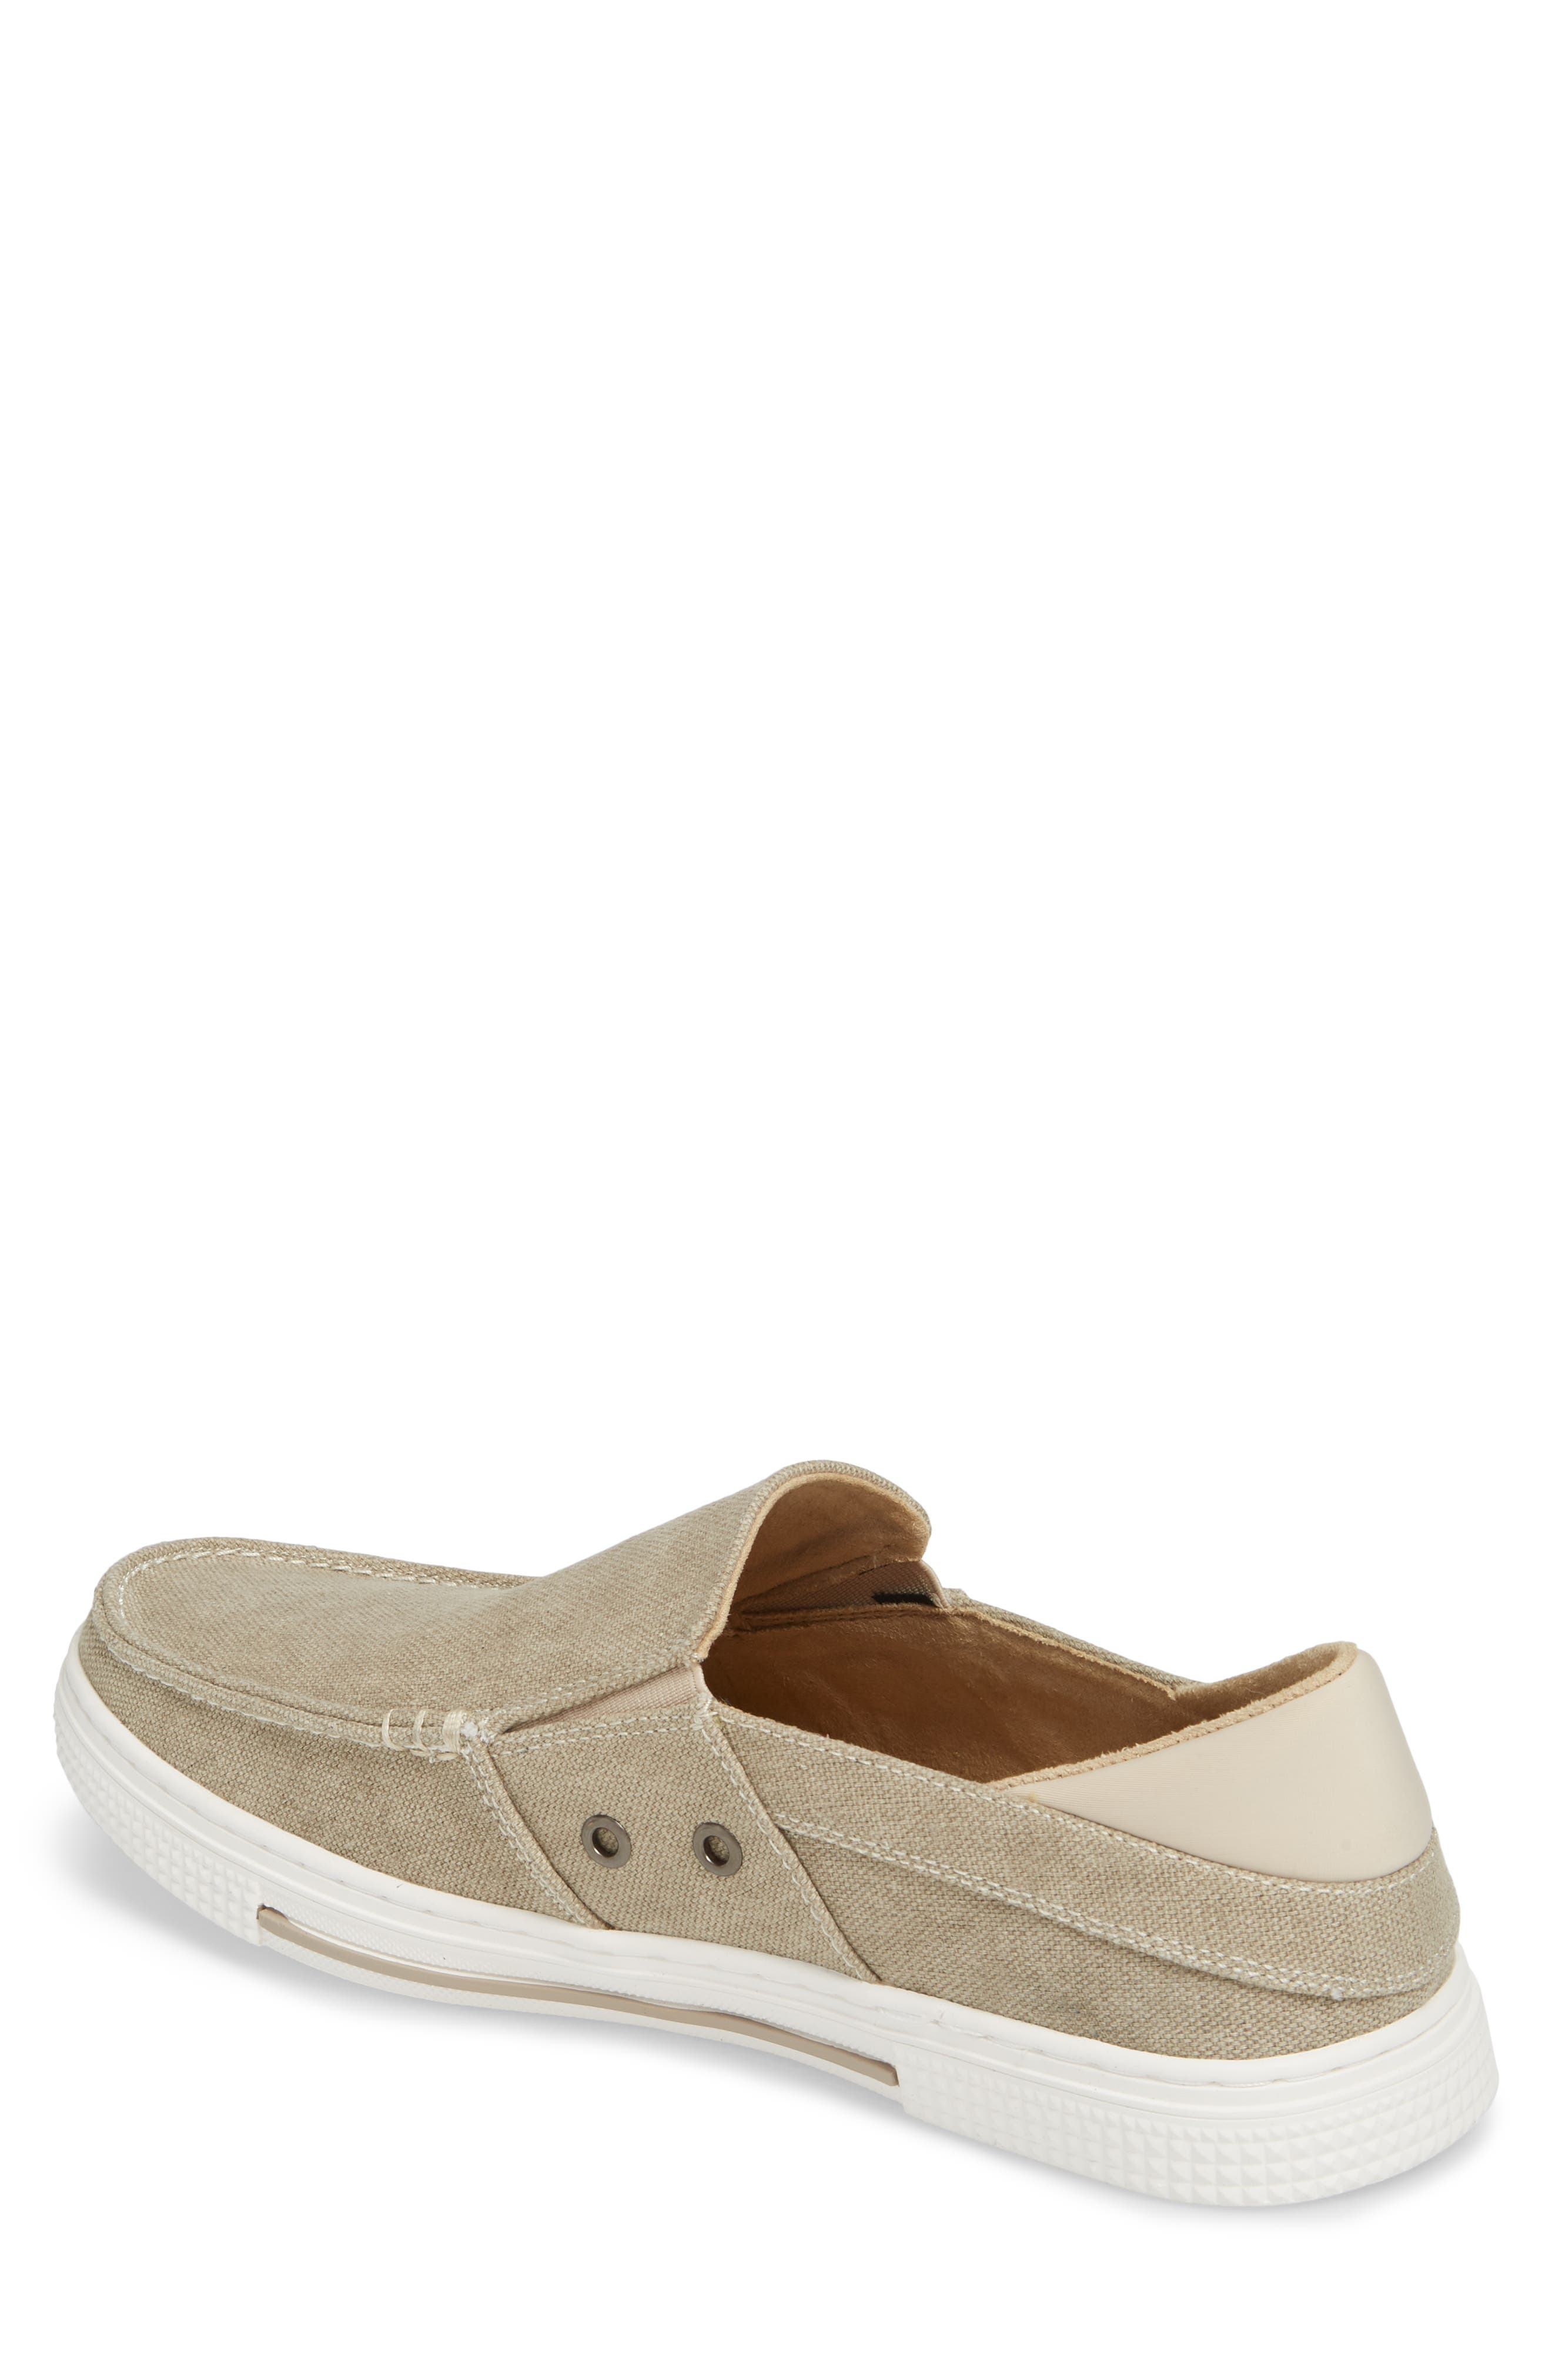 Ankir Boat Slip-On,                             Alternate thumbnail 2, color,                             SAND